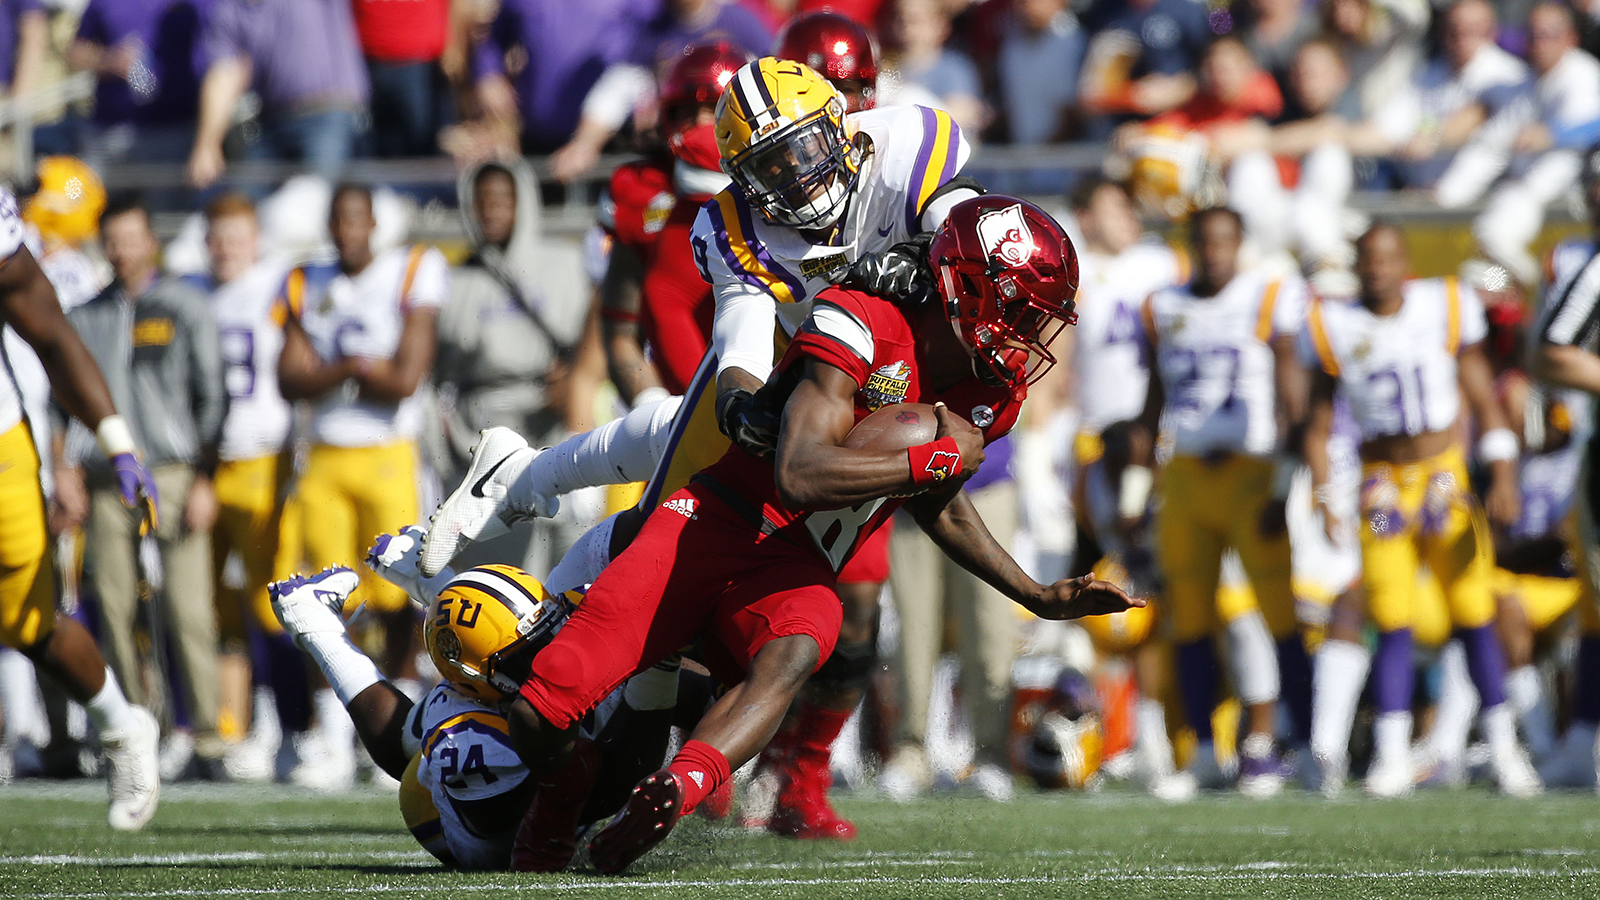 Dec 31, 2016; Orlando, FL, USA; Louisville Cardinals quarterback Lamar Jackson (8) runs with the ball as LSU Tigers defensive end Arden Key (49) tackles  during the first half at Camping World Stadium. Mandatory Credit: Kim Klement-USA TODAY Sports